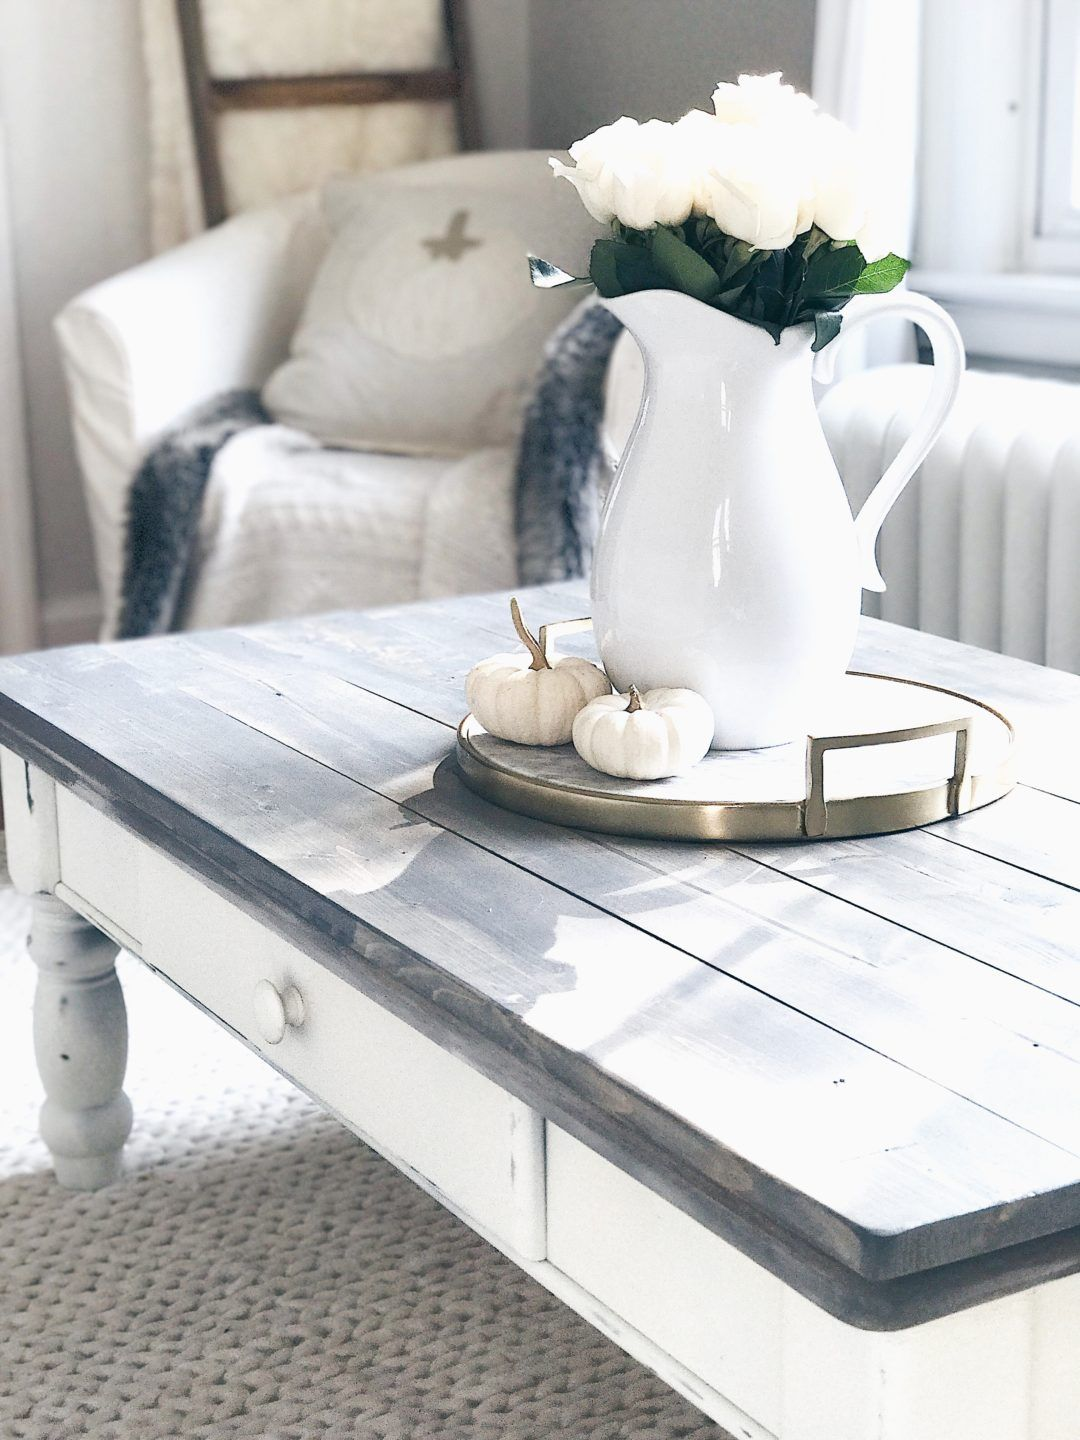 Farmhouse Coffee Table Makeover Rustic White And Gray Chalk Paint Table Makeover From Pintere Painted Coffee Tables Coffee Table White Coffee Table Farmhouse